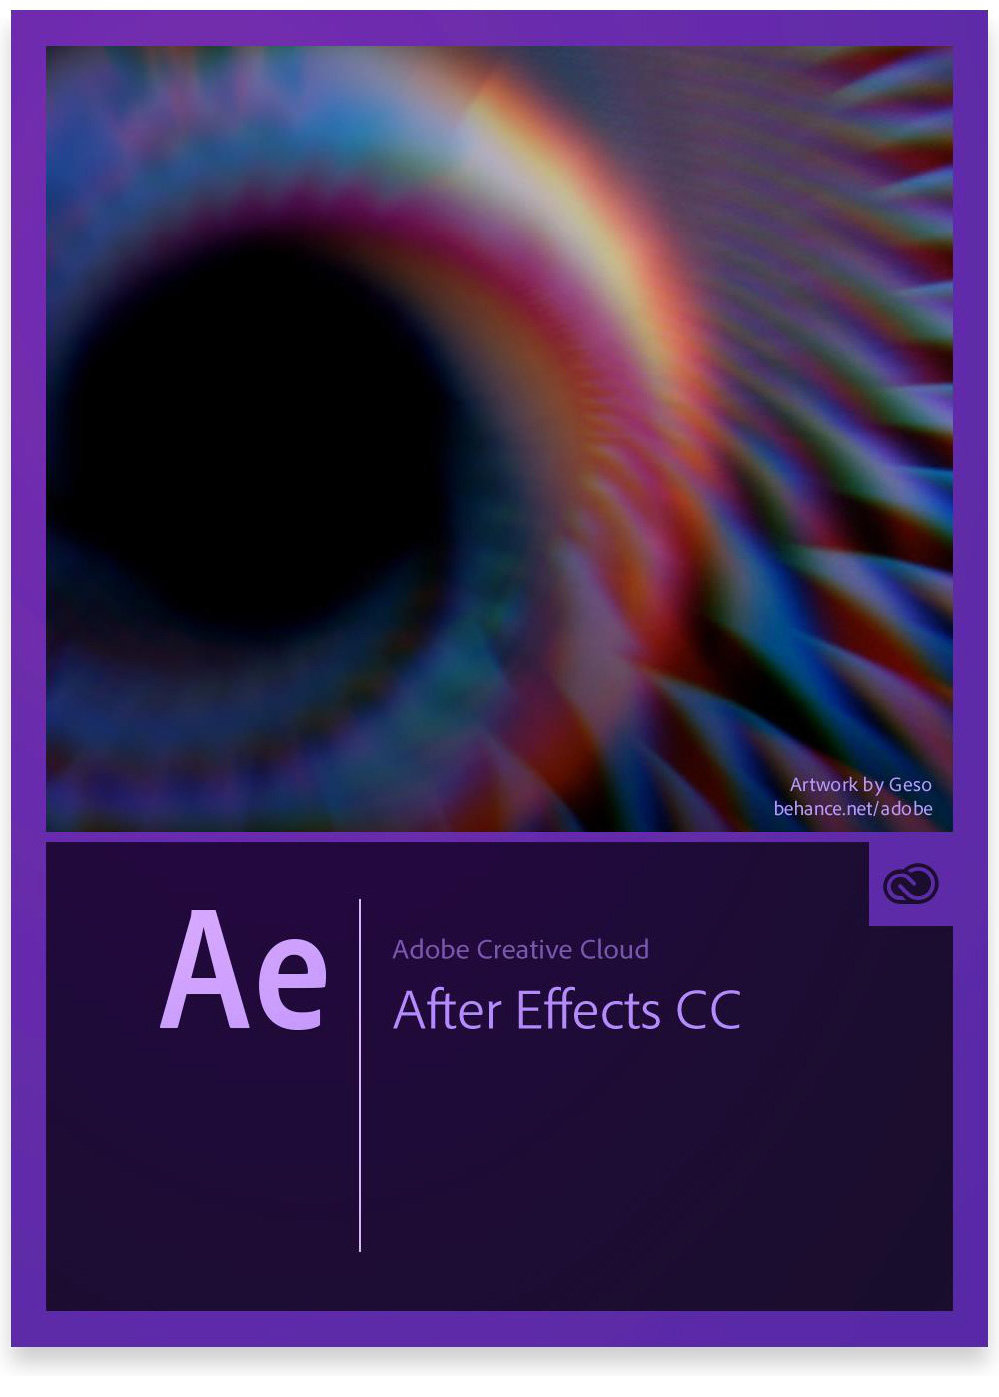 Adobe After Effects CC 2014 (64 bit) (Crack VR) [Multi]